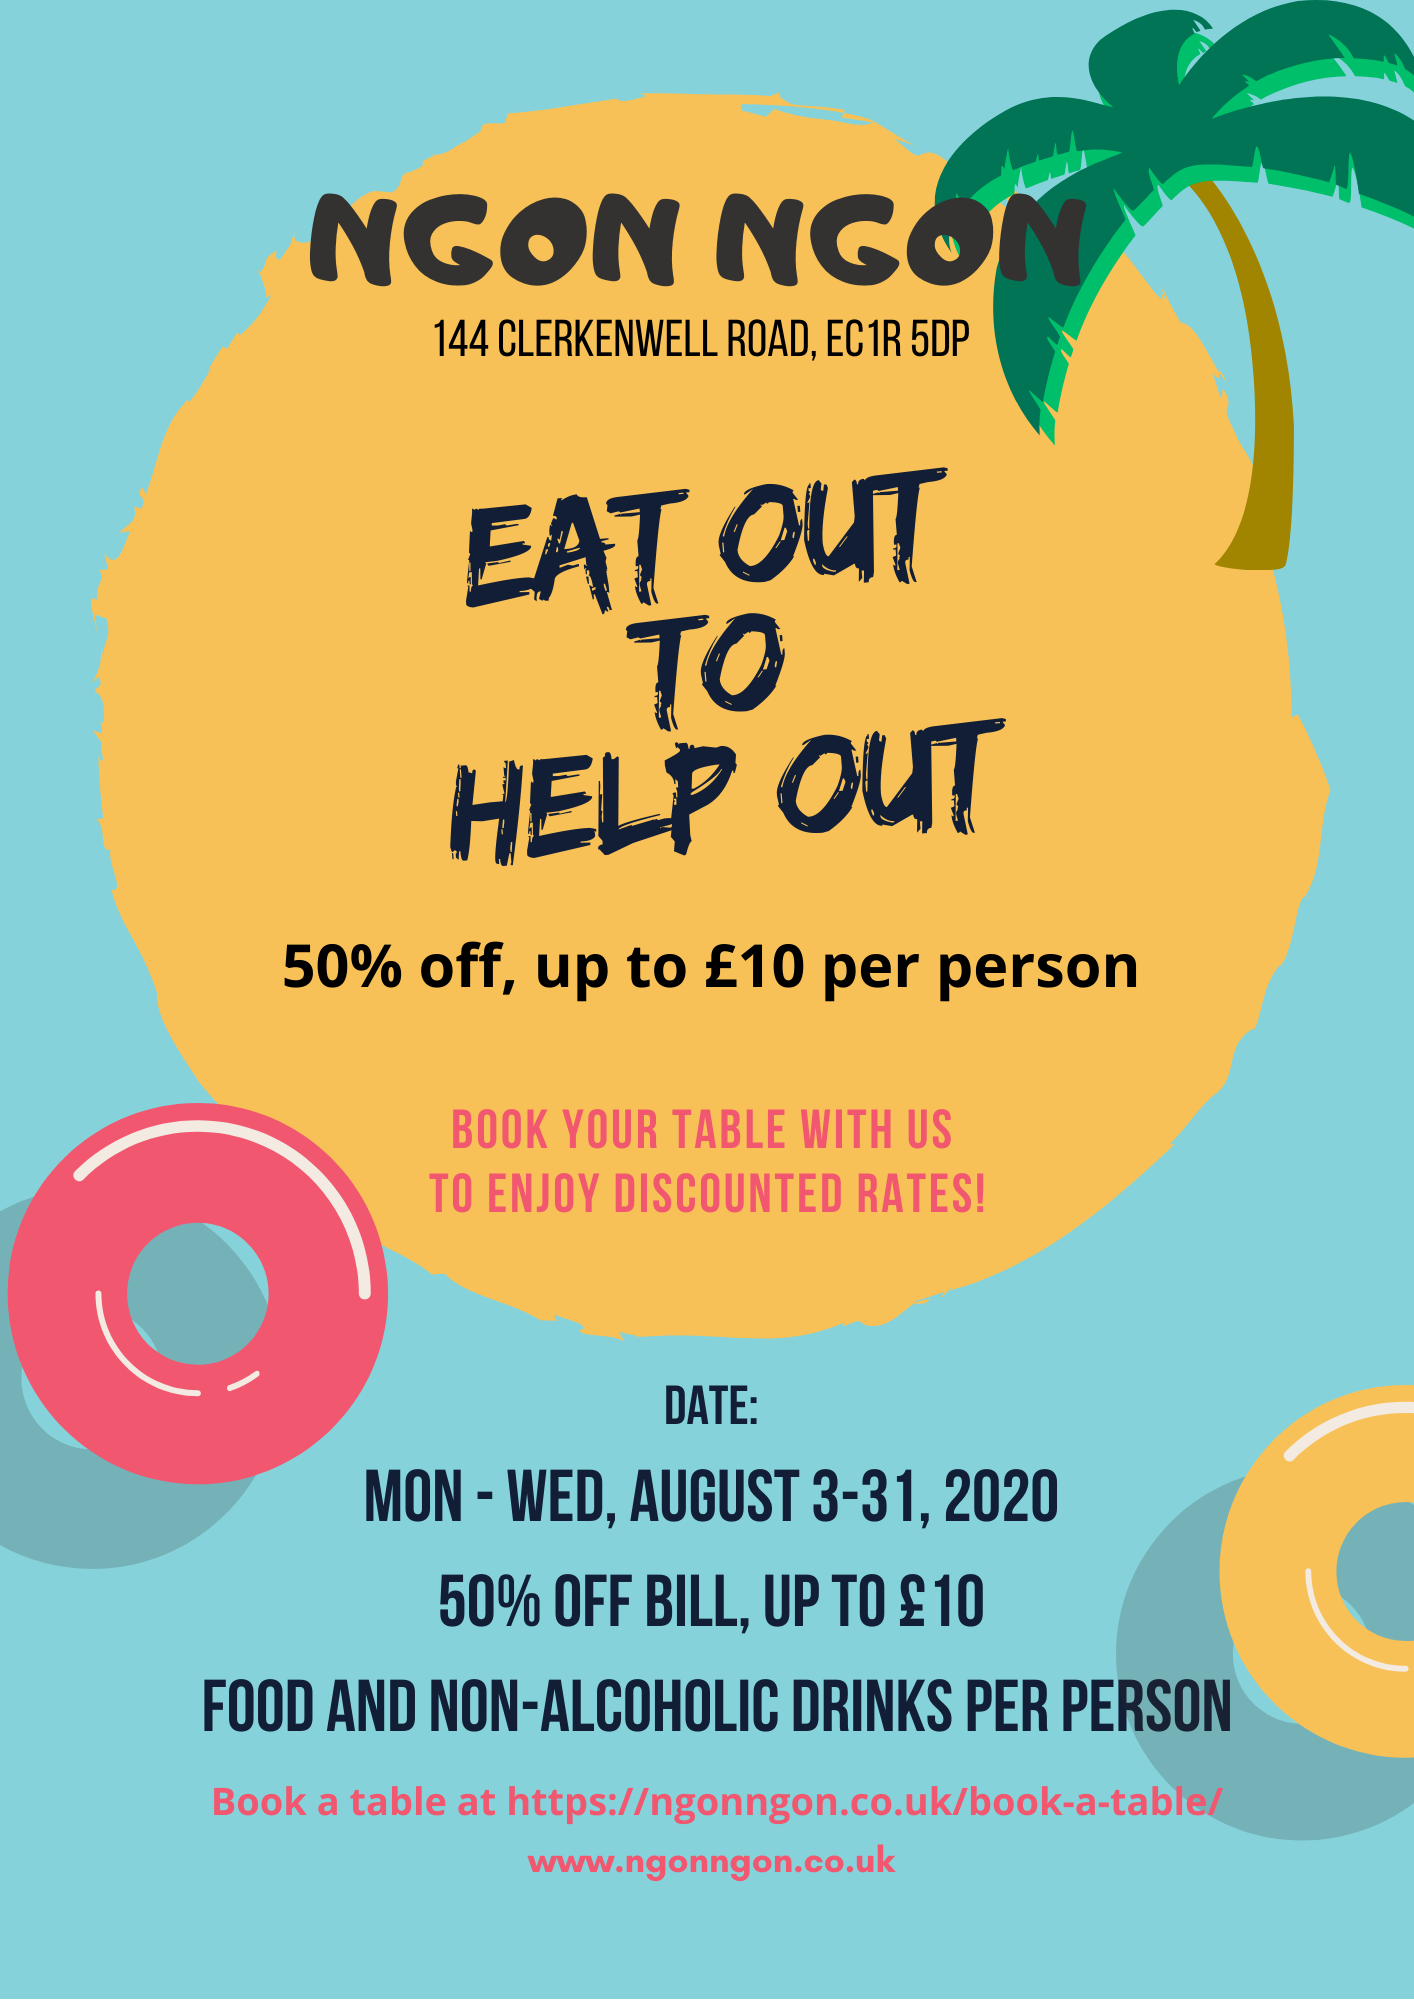 EAT OUT TO HELP OUT!!!